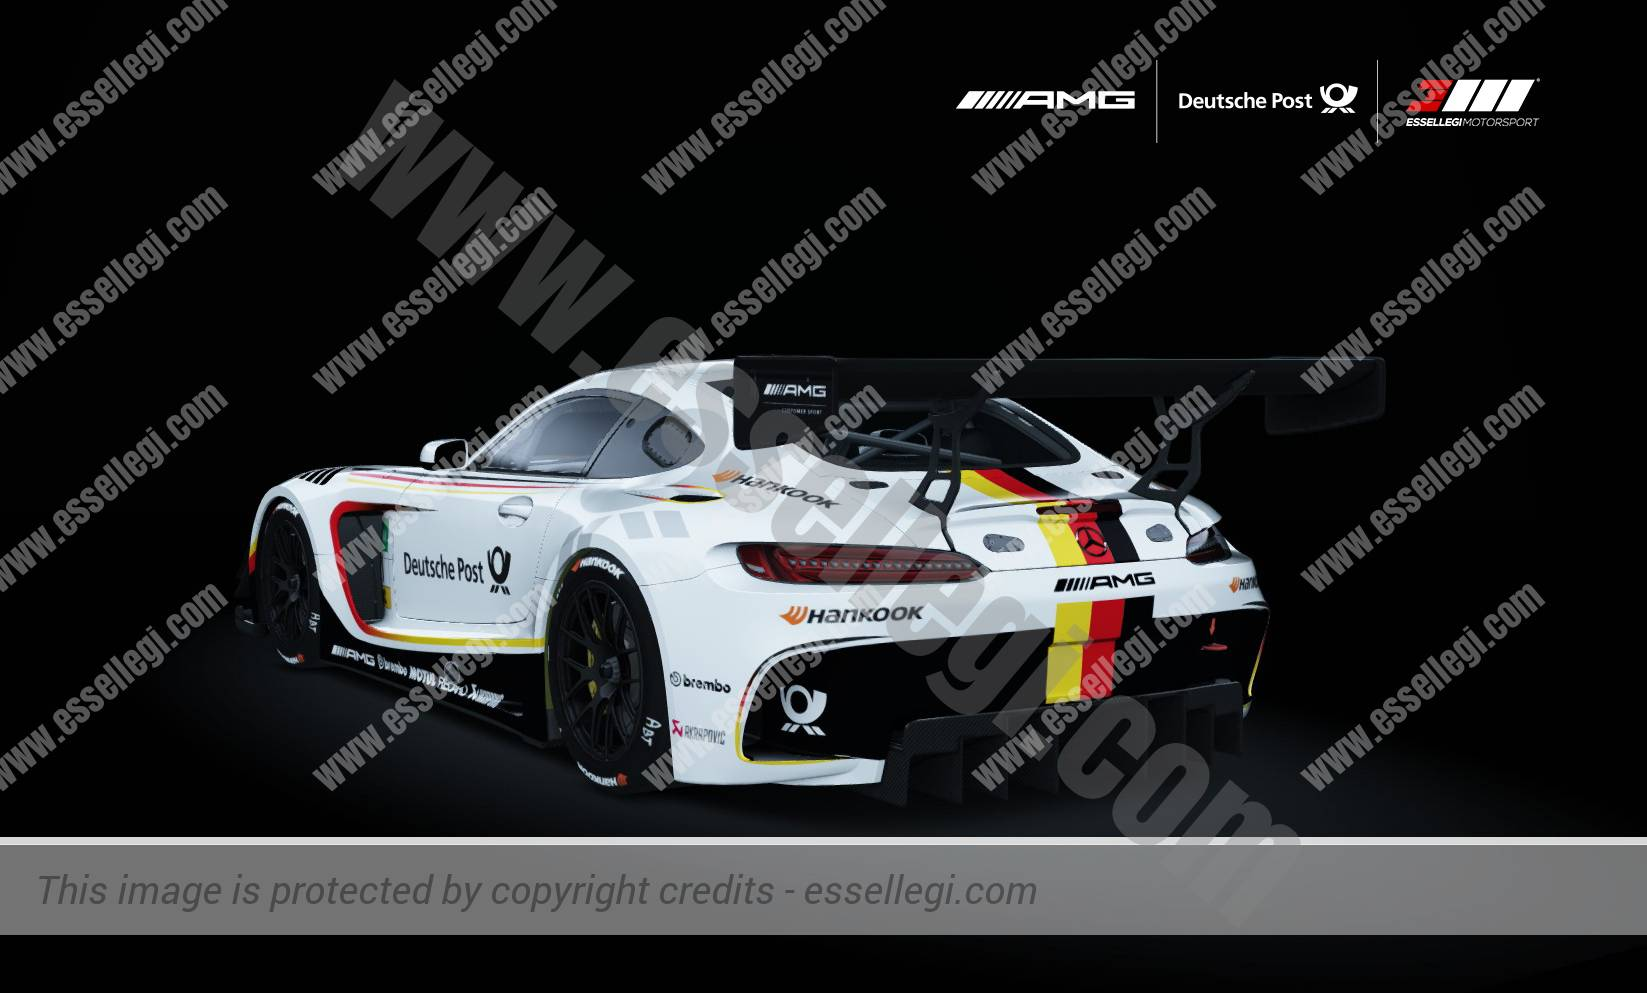 mercedes benz amg gt3 deutsche post motorsport livery by. Black Bedroom Furniture Sets. Home Design Ideas